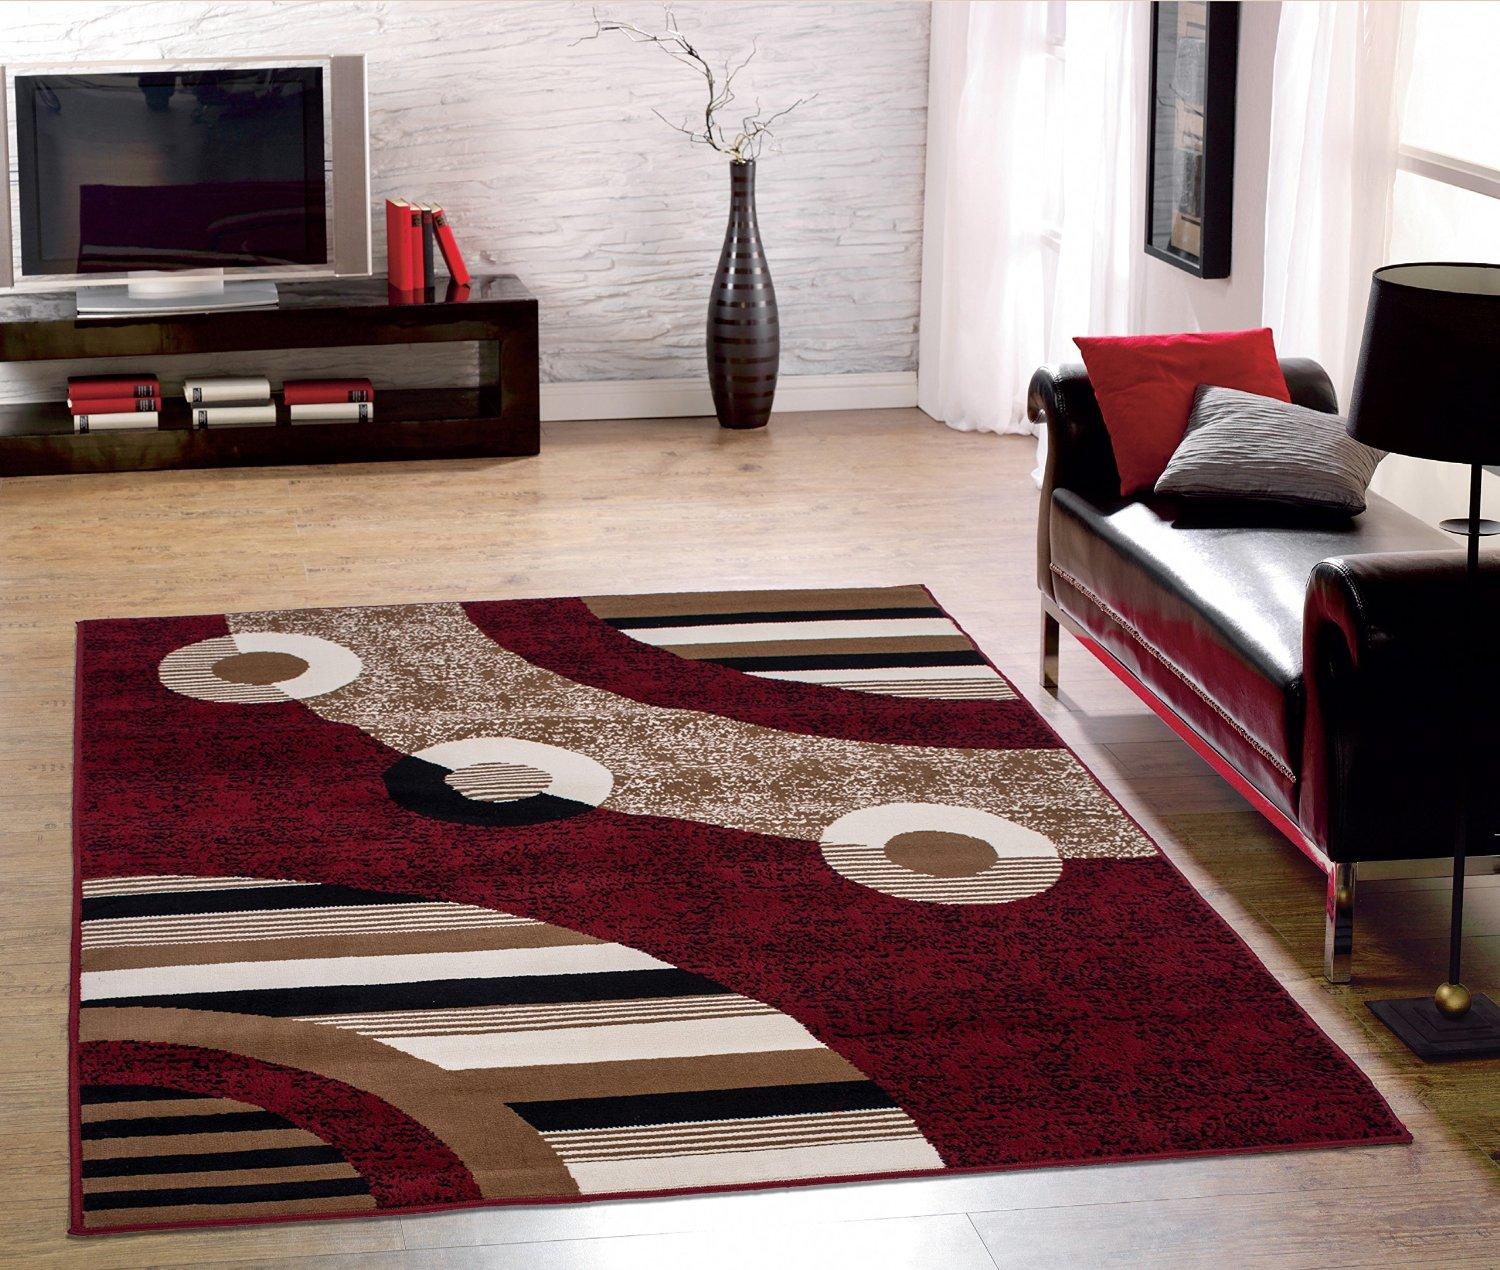 Bright-Life-Style-Ultra-Modern-Carpets-And-Rugs-13